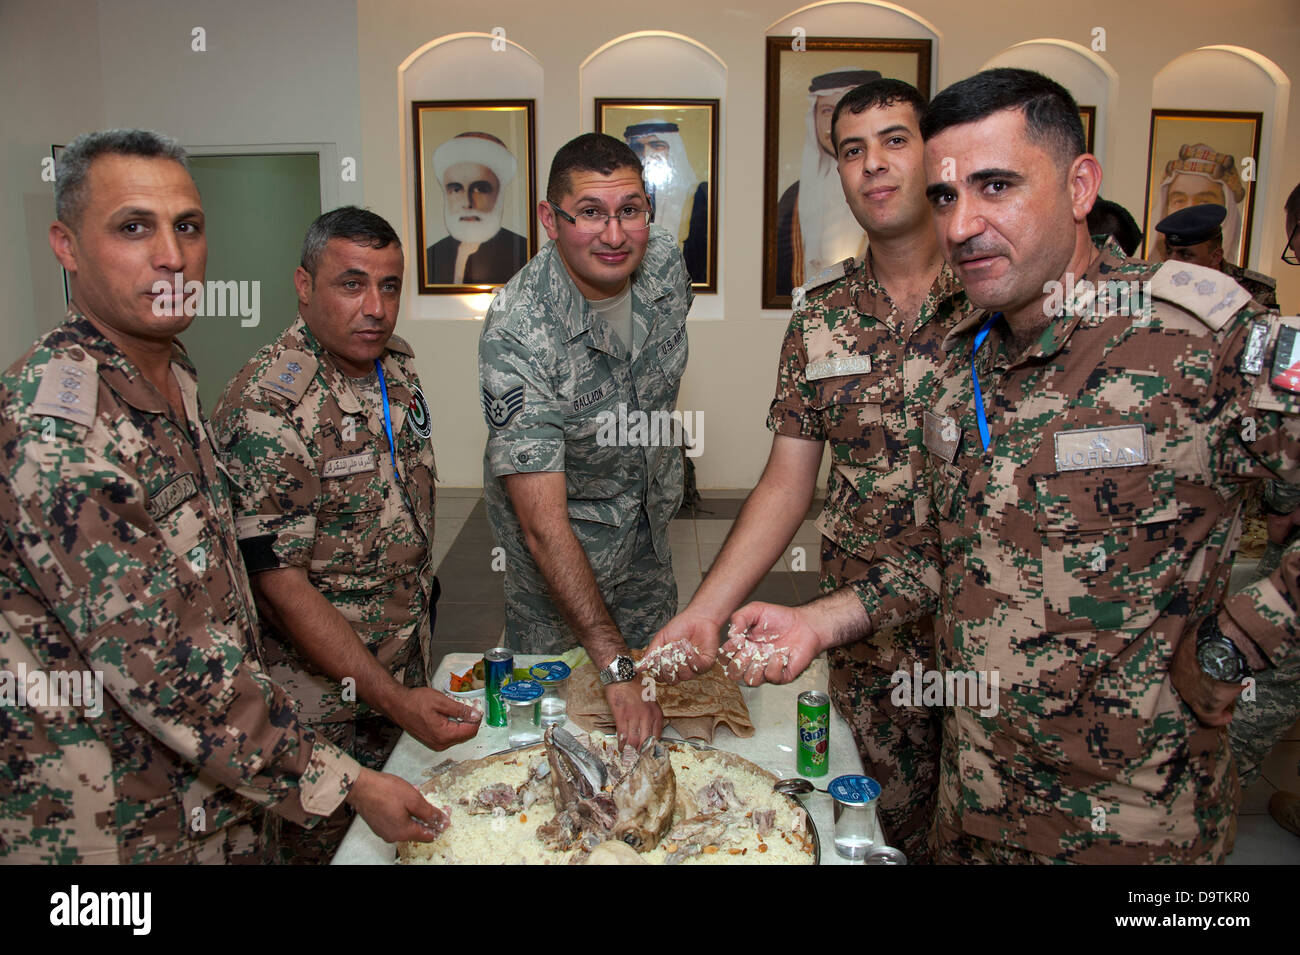 As part of the opening ceremonies of an Eager Lion event, members from the Royal Jordanian Air Force share a traditional - Stock Image